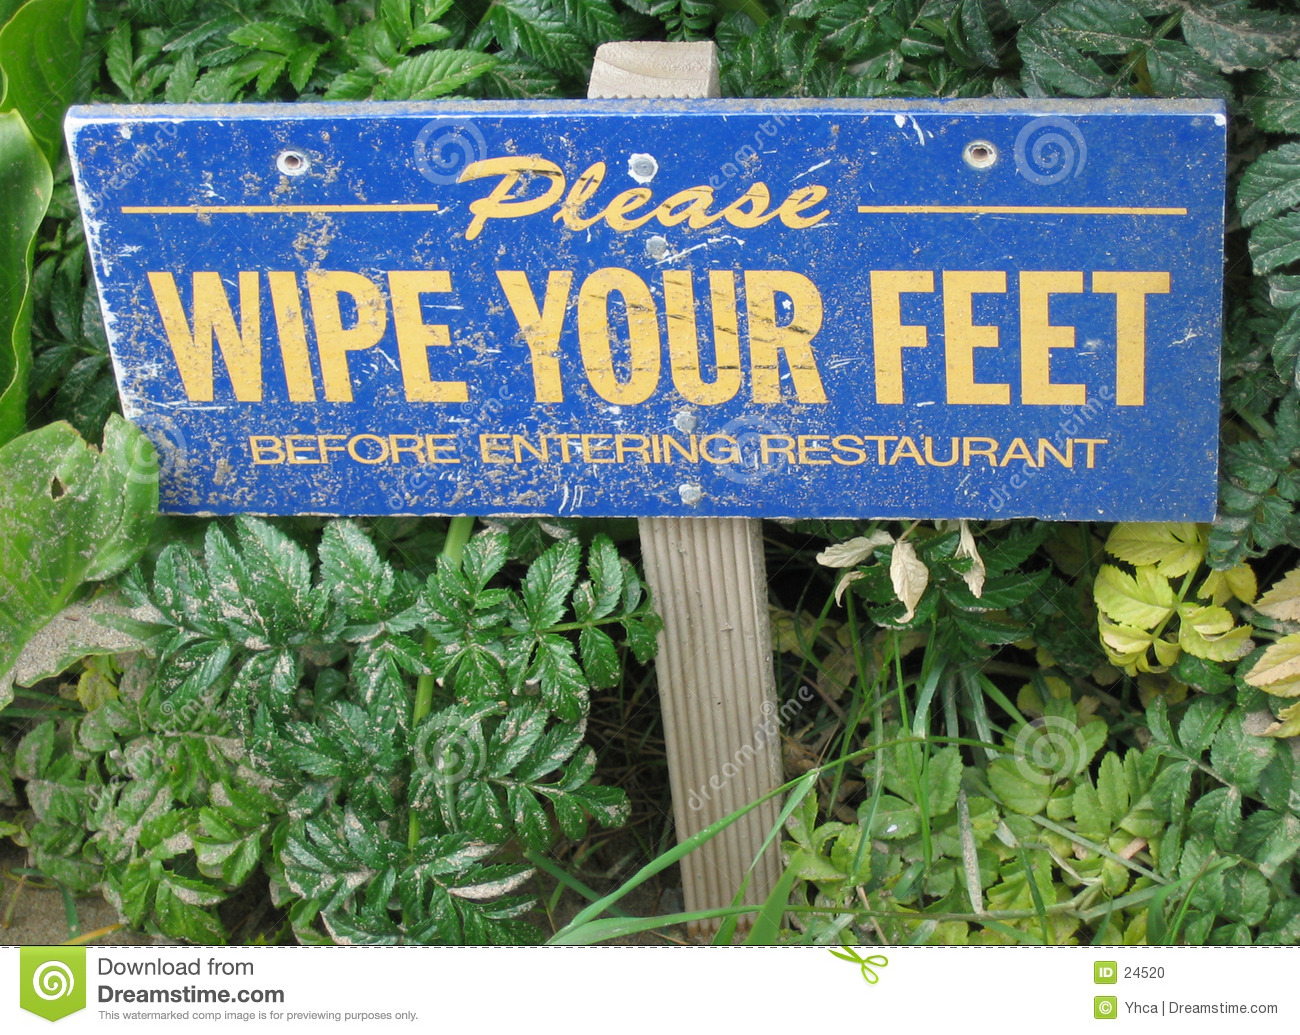 Wipe your feet sign